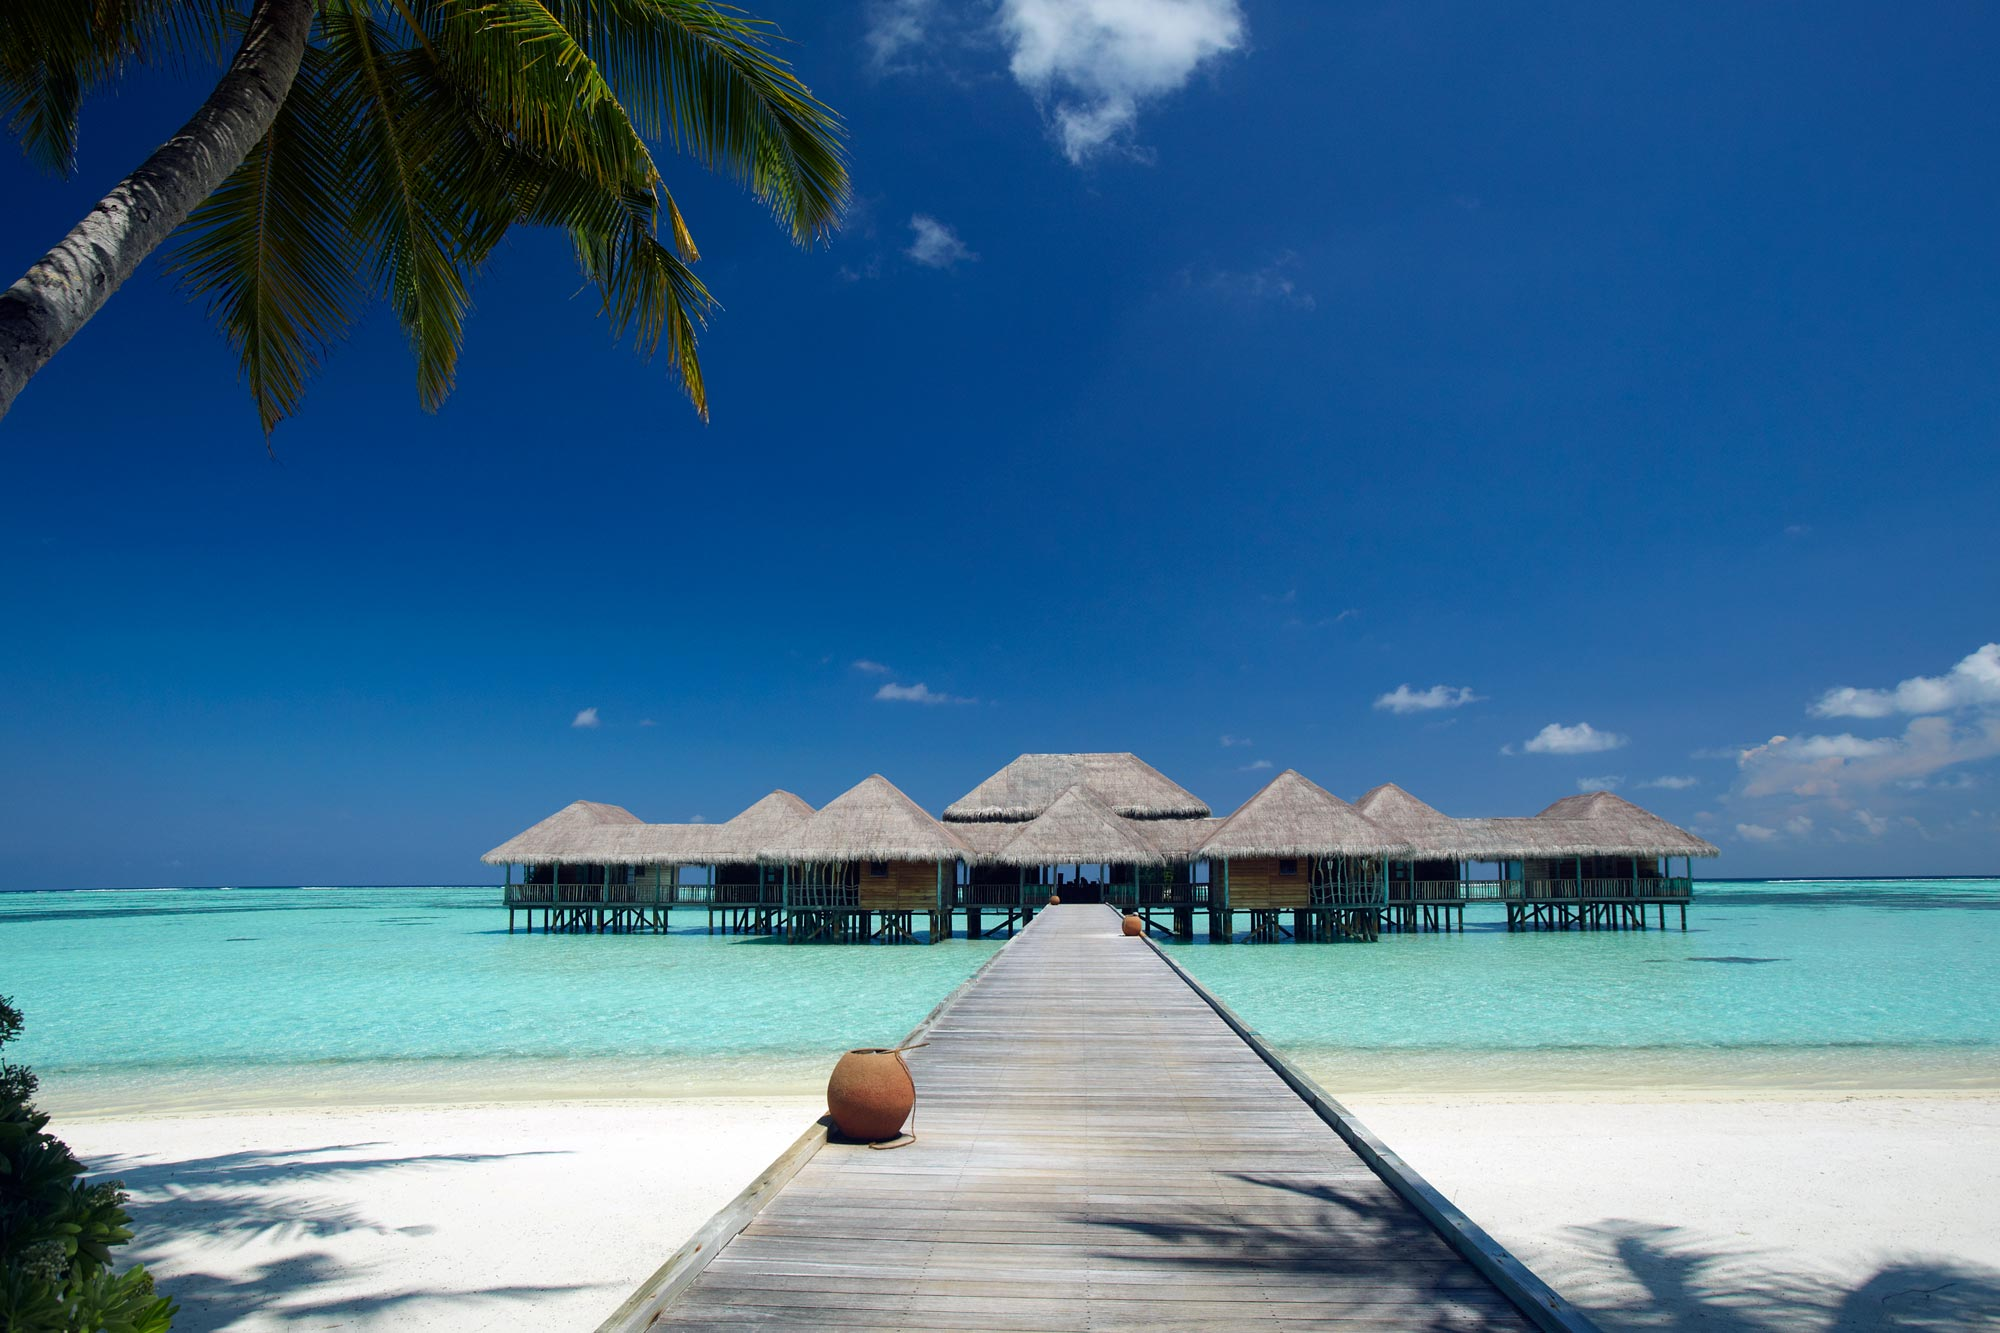 The Gili Lankfanfushi Meera Spa